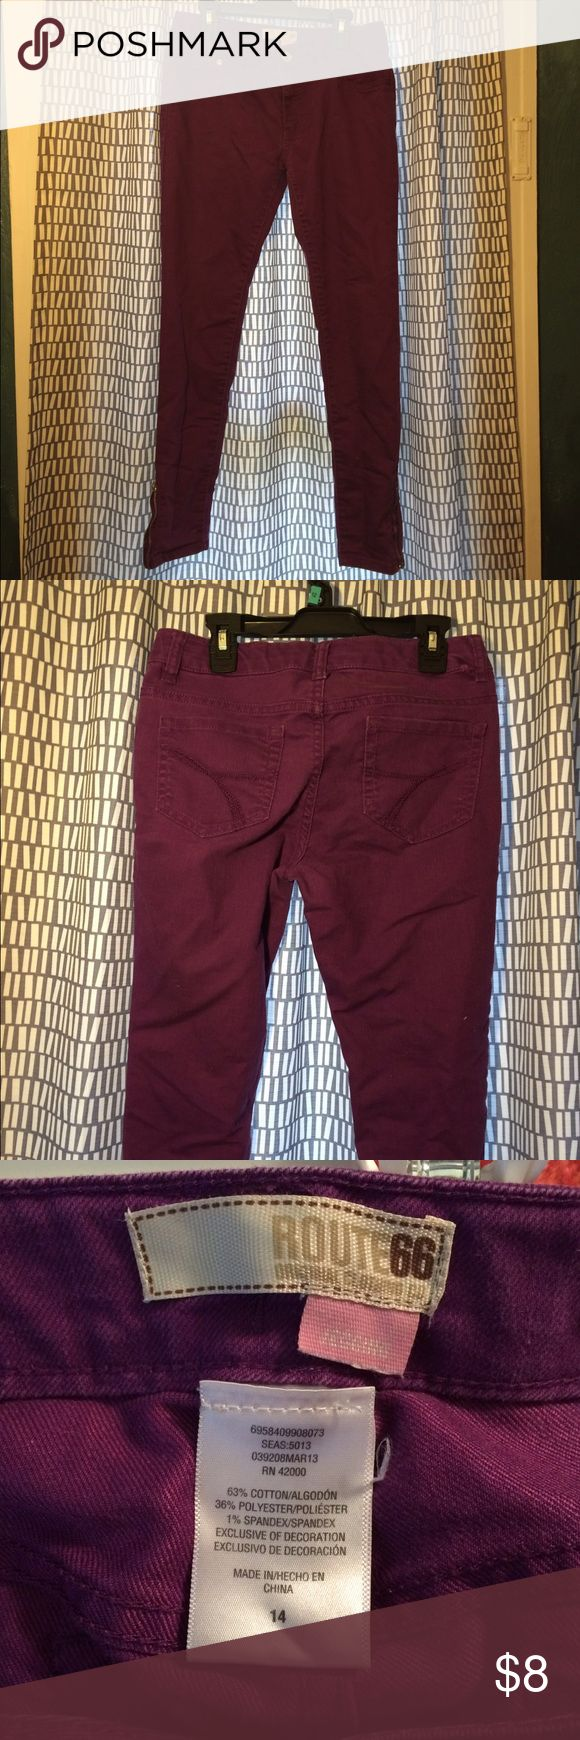 Purple Size 14 Girls skinny jeans Plum purple skinny jeans, girls size 14. Good condition! Route 66 Bottoms